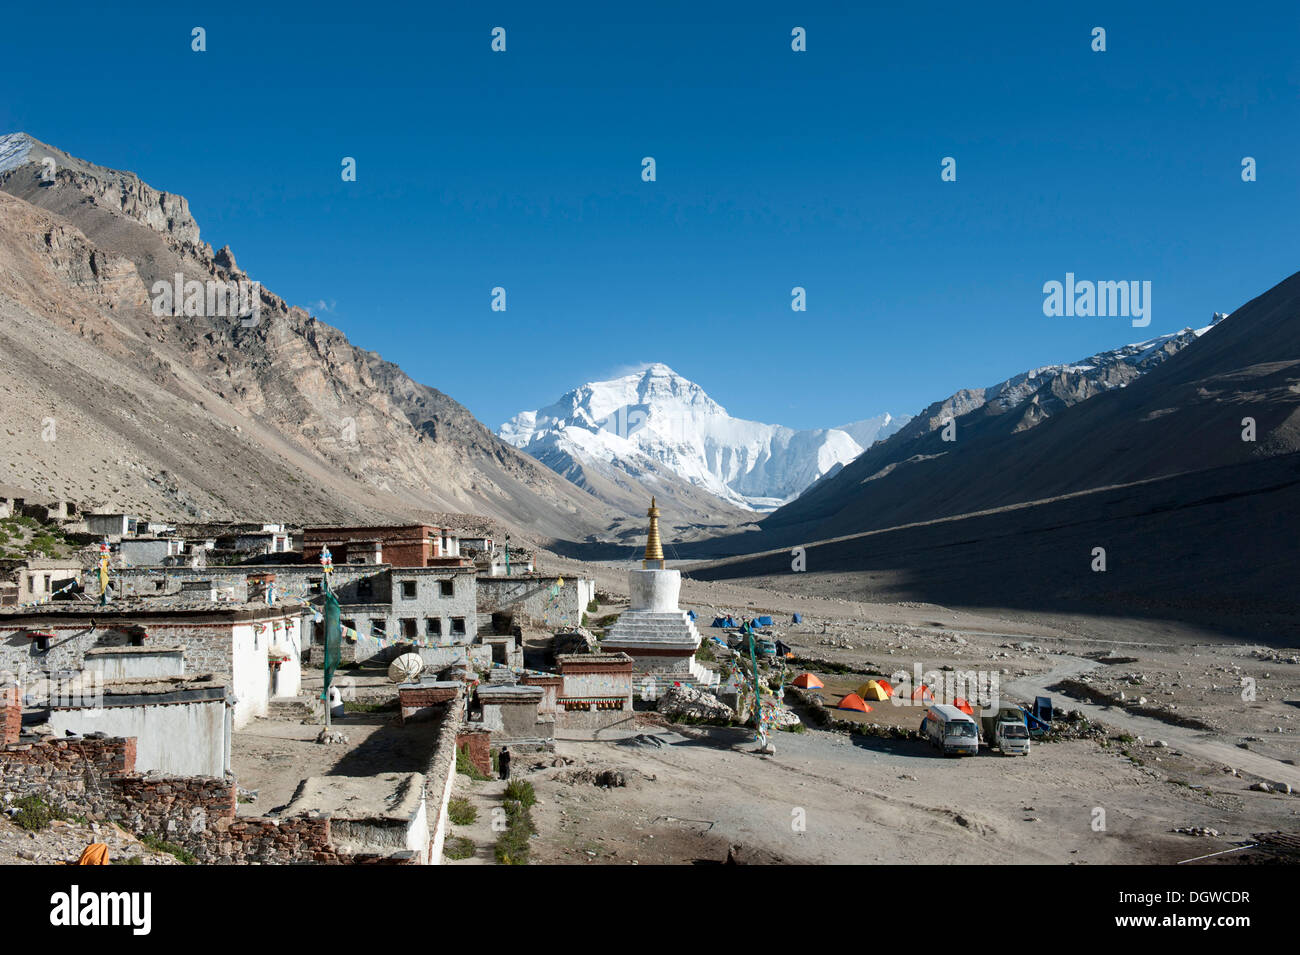 Tibetan Buddhism, Rongbuk Monastery, white stupa, Mount Everest, base camp north side, the Himalayas, central Tibet, U-Tsang - Stock Image